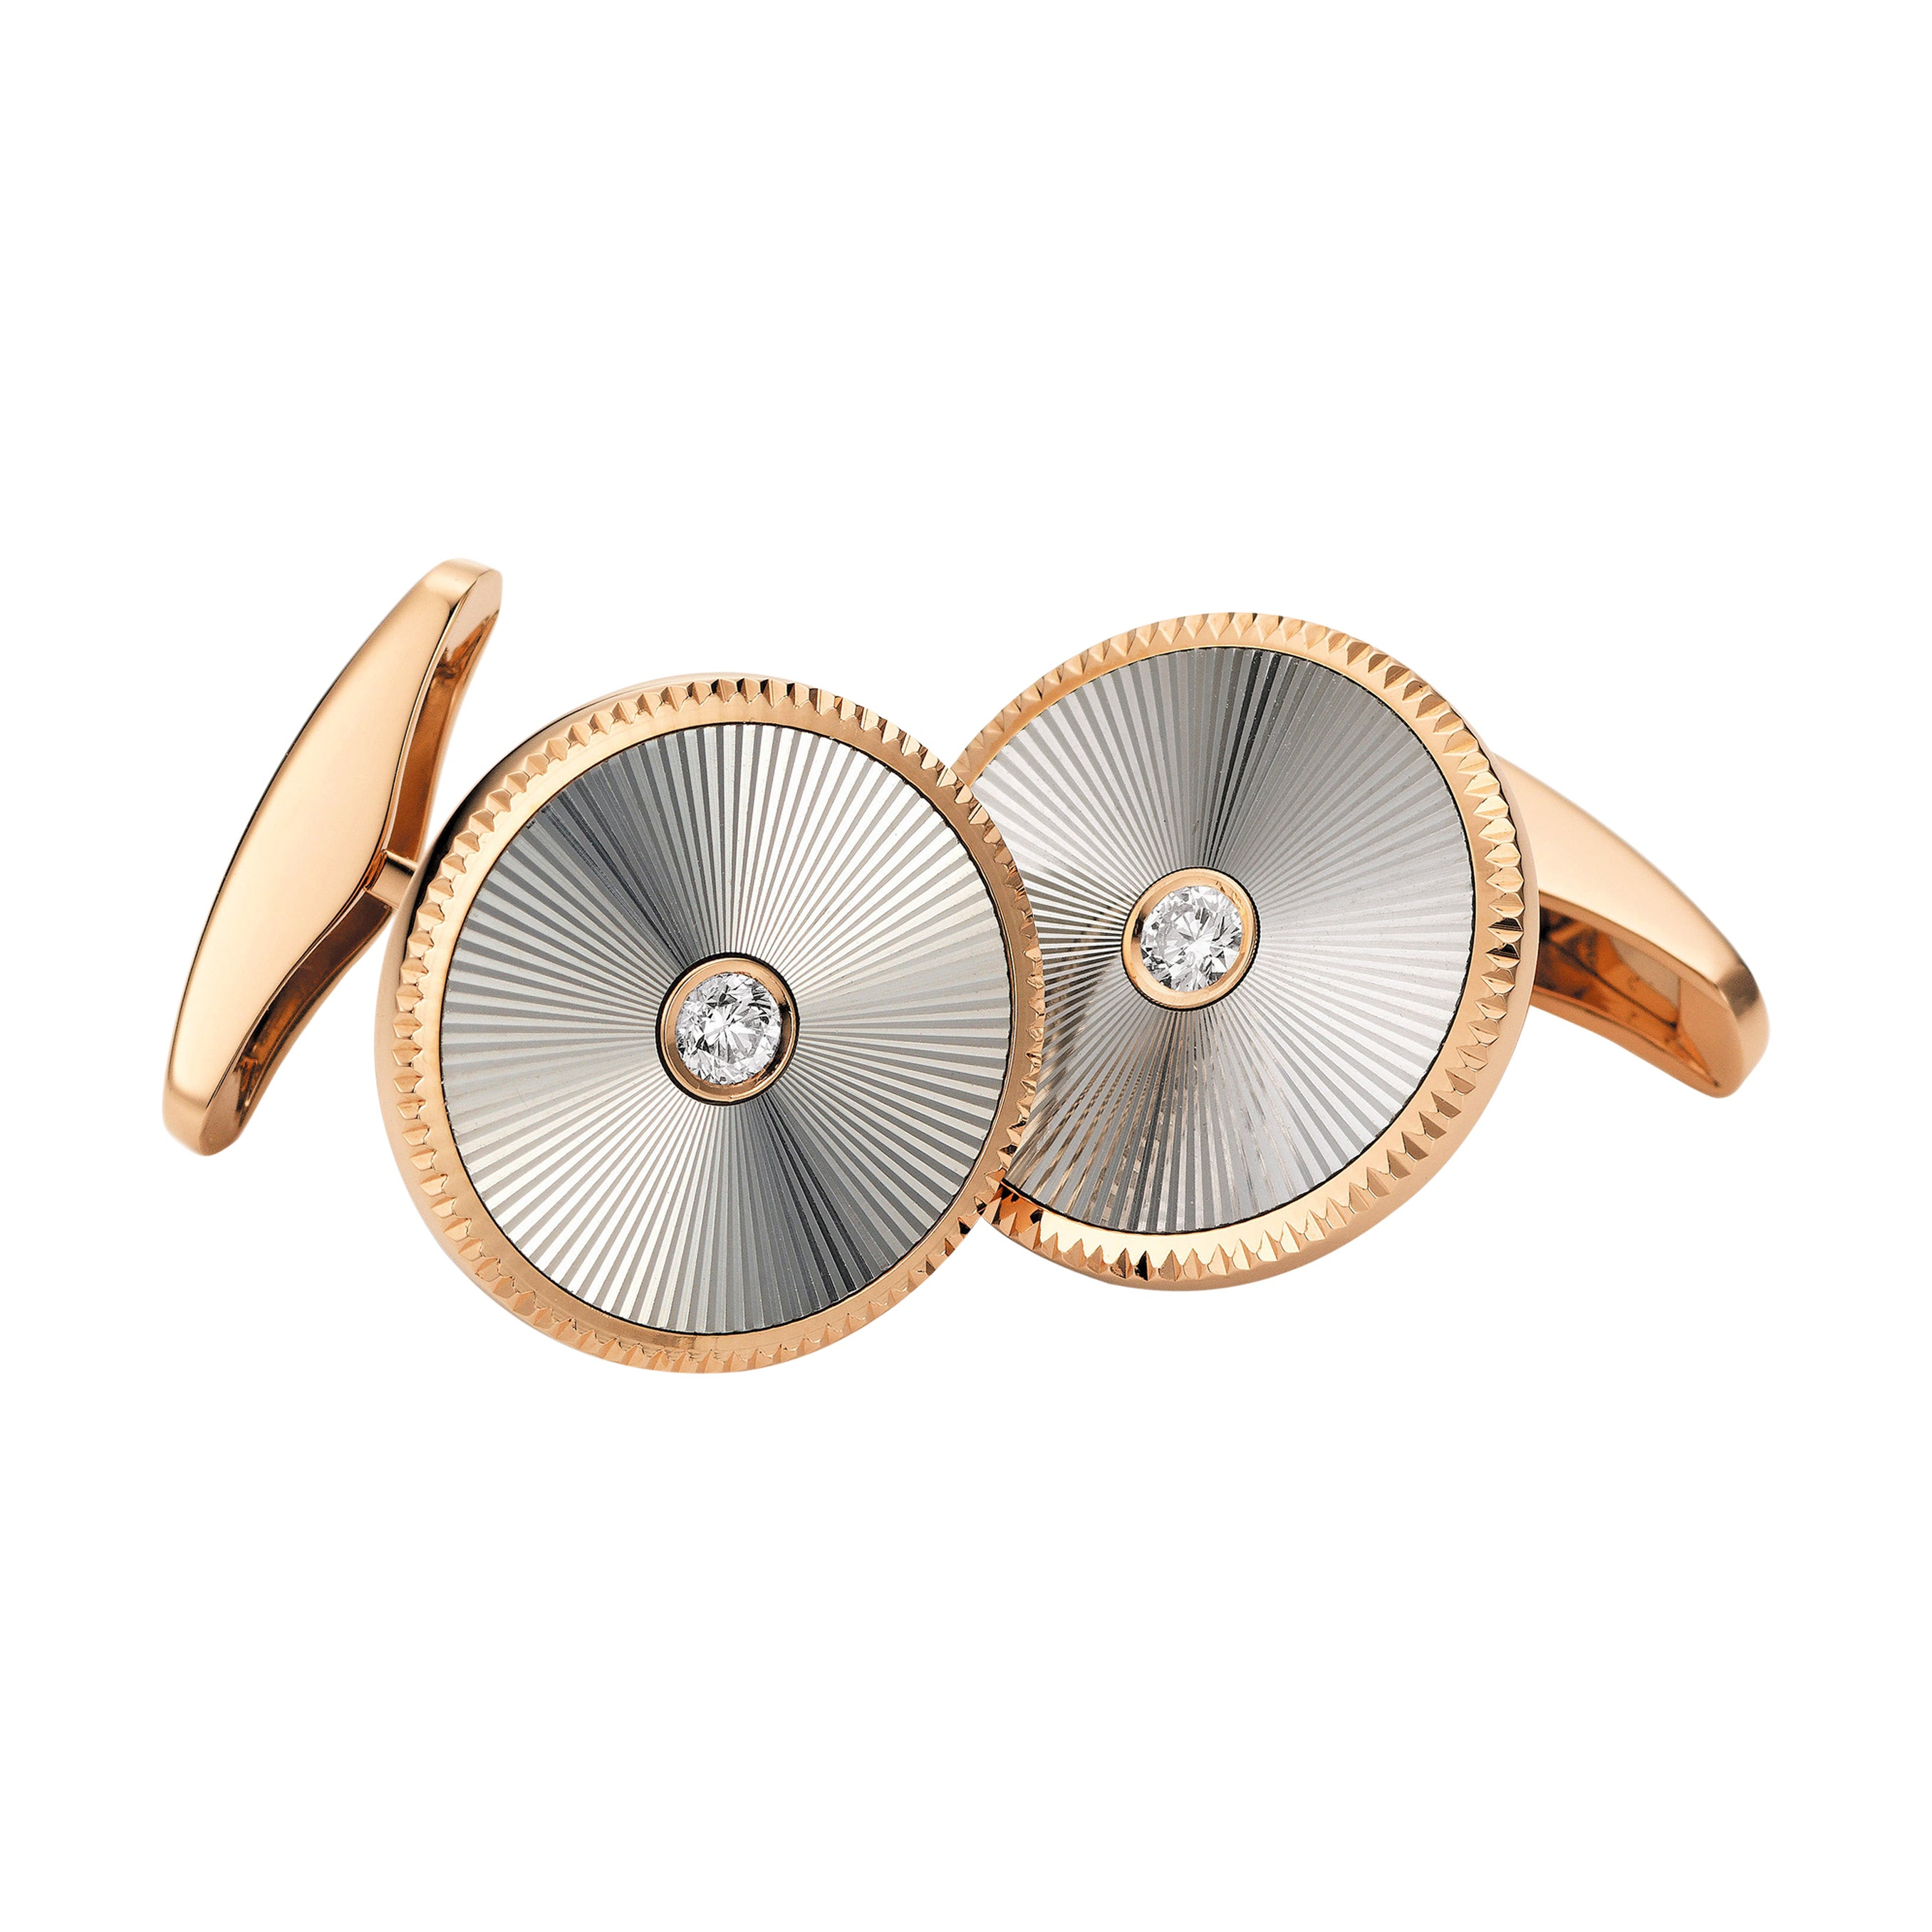 Starburst Limited Edition Cufflinks in Rose Gold & White Gold with Diamonds